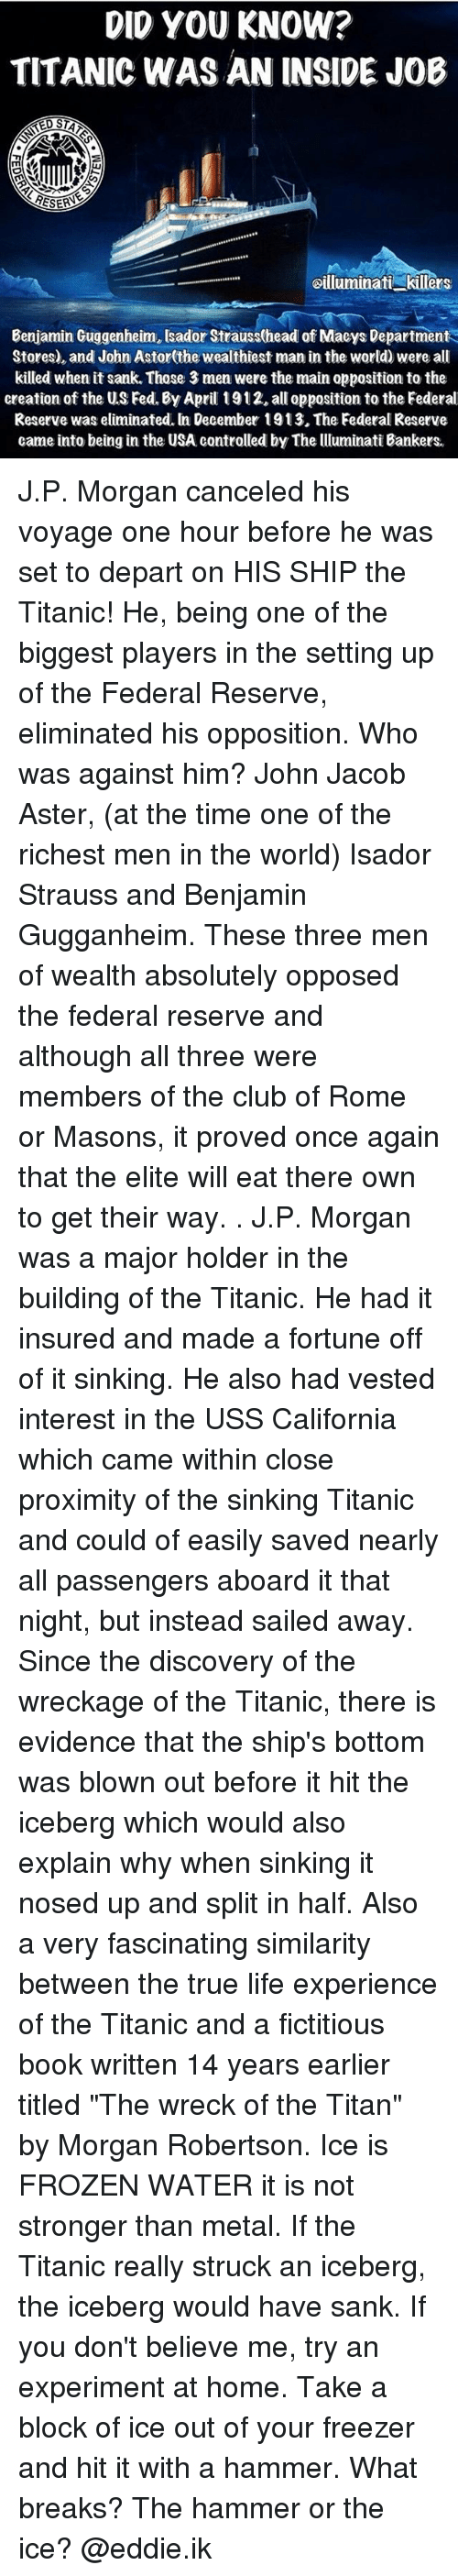 """wrecking: DID YOU KNOW?  TITANIC WAS AN INSIDE JOB  RESERA  oilluminati killers  Benjamin Guggenheim, sador Strauss(head of Maeys Department  Stores), and John Astor(the wealthiest man in the world) were all  killed when it sank. Those 3 men were the main opposition to the  creation of the US Fed. By April 1912.all opposition to the Federal  Reserve was eliminated. In December 1913. The Federal Reserve  came into being in the USA contralled by The lluminati Bankers. J.P. Morgan canceled his voyage one hour before he was set to depart on HIS SHIP the Titanic! He, being one of the biggest players in the setting up of the Federal Reserve, eliminated his opposition. Who was against him? John Jacob Aster, (at the time one of the richest men in the world) Isador Strauss and Benjamin Gugganheim. These three men of wealth absolutely opposed the federal reserve and although all three were members of the club of Rome or Masons, it proved once again that the elite will eat there own to get their way. . J.P. Morgan was a major holder in the building of the Titanic. He had it insured and made a fortune off of it sinking. He also had vested interest in the USS California which came within close proximity of the sinking Titanic and could of easily saved nearly all passengers aboard it that night, but instead sailed away. Since the discovery of the wreckage of the Titanic, there is evidence that the ship's bottom was blown out before it hit the iceberg which would also explain why when sinking it nosed up and split in half. Also a very fascinating similarity between the true life experience of the Titanic and a fictitious book written 14 years earlier titled """"The wreck of the Titan"""" by Morgan Robertson. Ice is FROZEN WATER it is not stronger than metal. If the Titanic really struck an iceberg, the iceberg would have sank. If you don't believe me, try an experiment at home. Take a block of ice out of your freezer and hit it with a hammer. What breaks? The hammer or the ice? @eddie.i"""